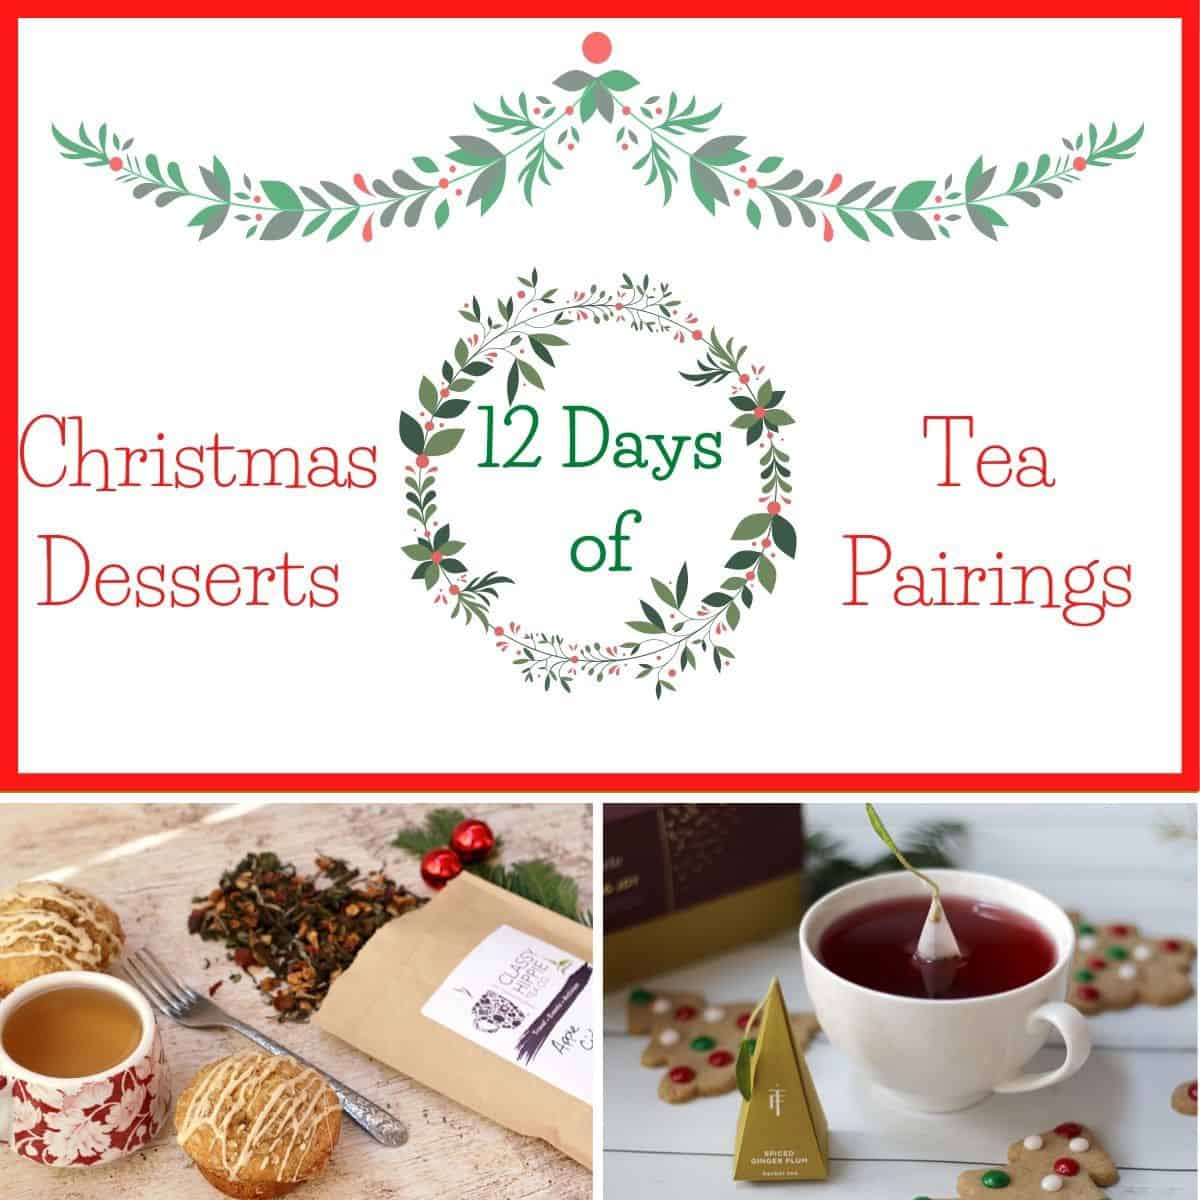 two Christmas desserts paired with tea